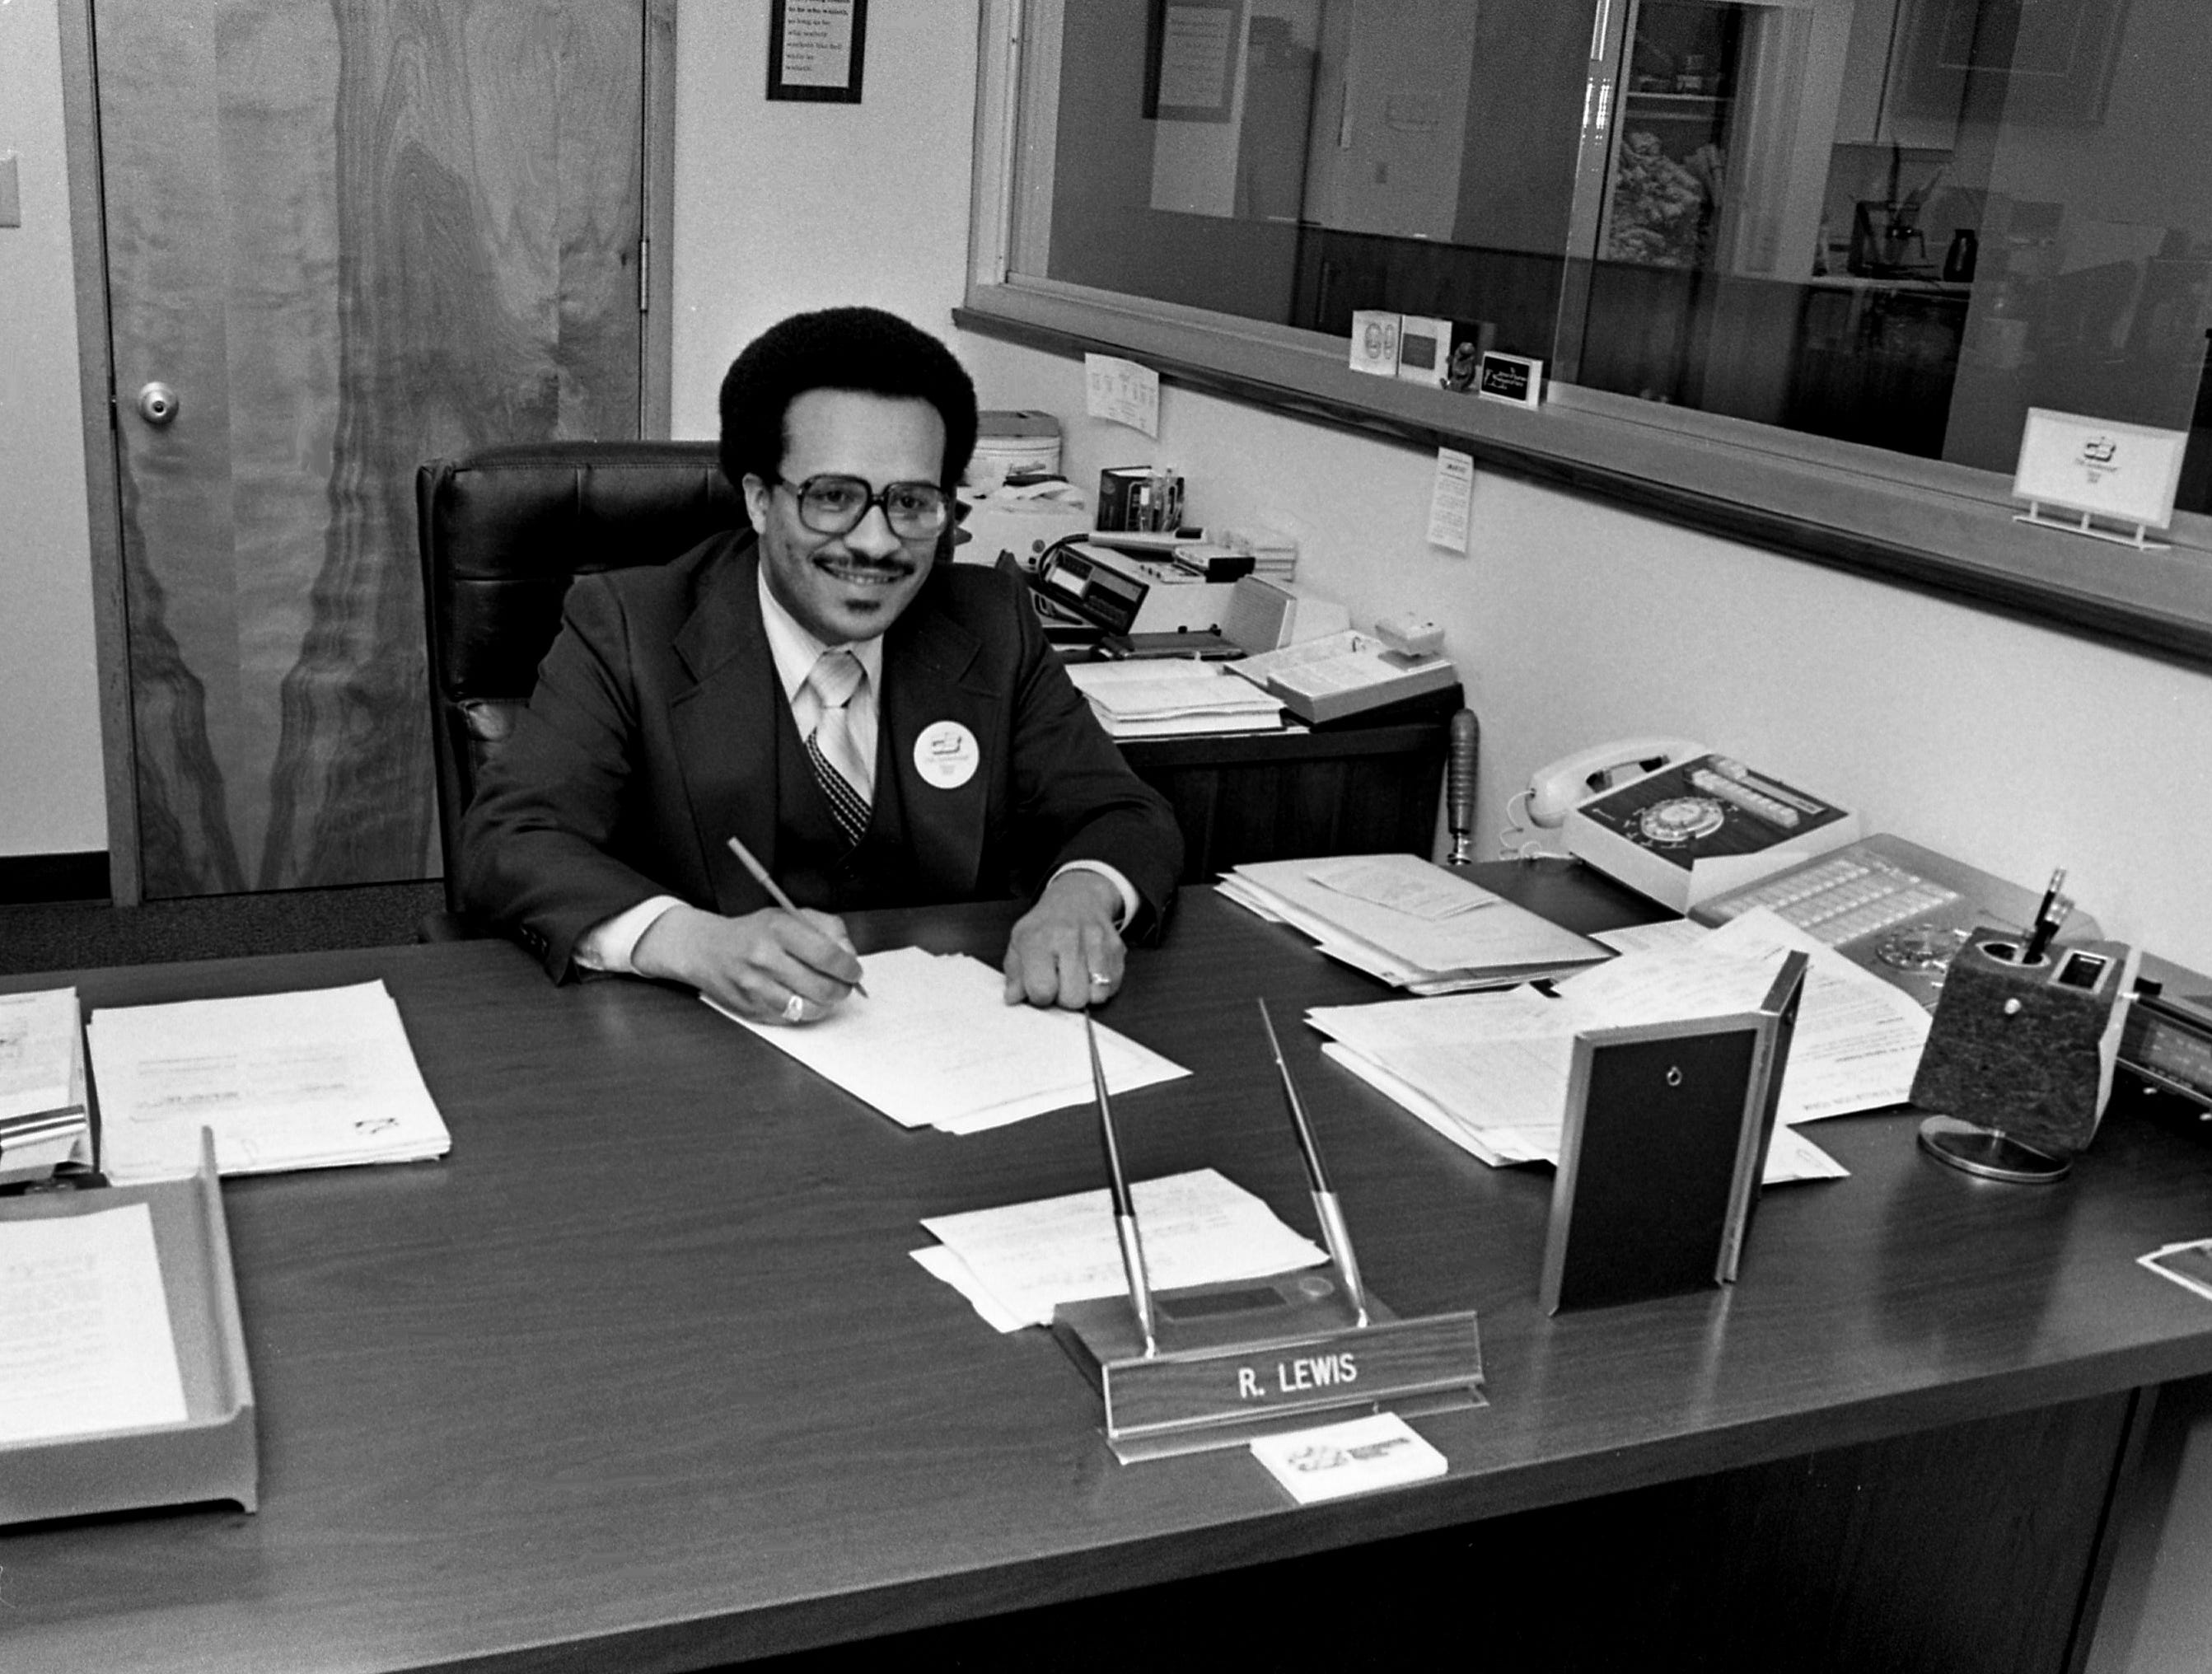 Richard Lewis, 34, president of the Citizens Savings Bank and Trust Company, works at his desk on April 10, 1979. He has been at Citizens for a year after serving in several capacities for Third National Bank.